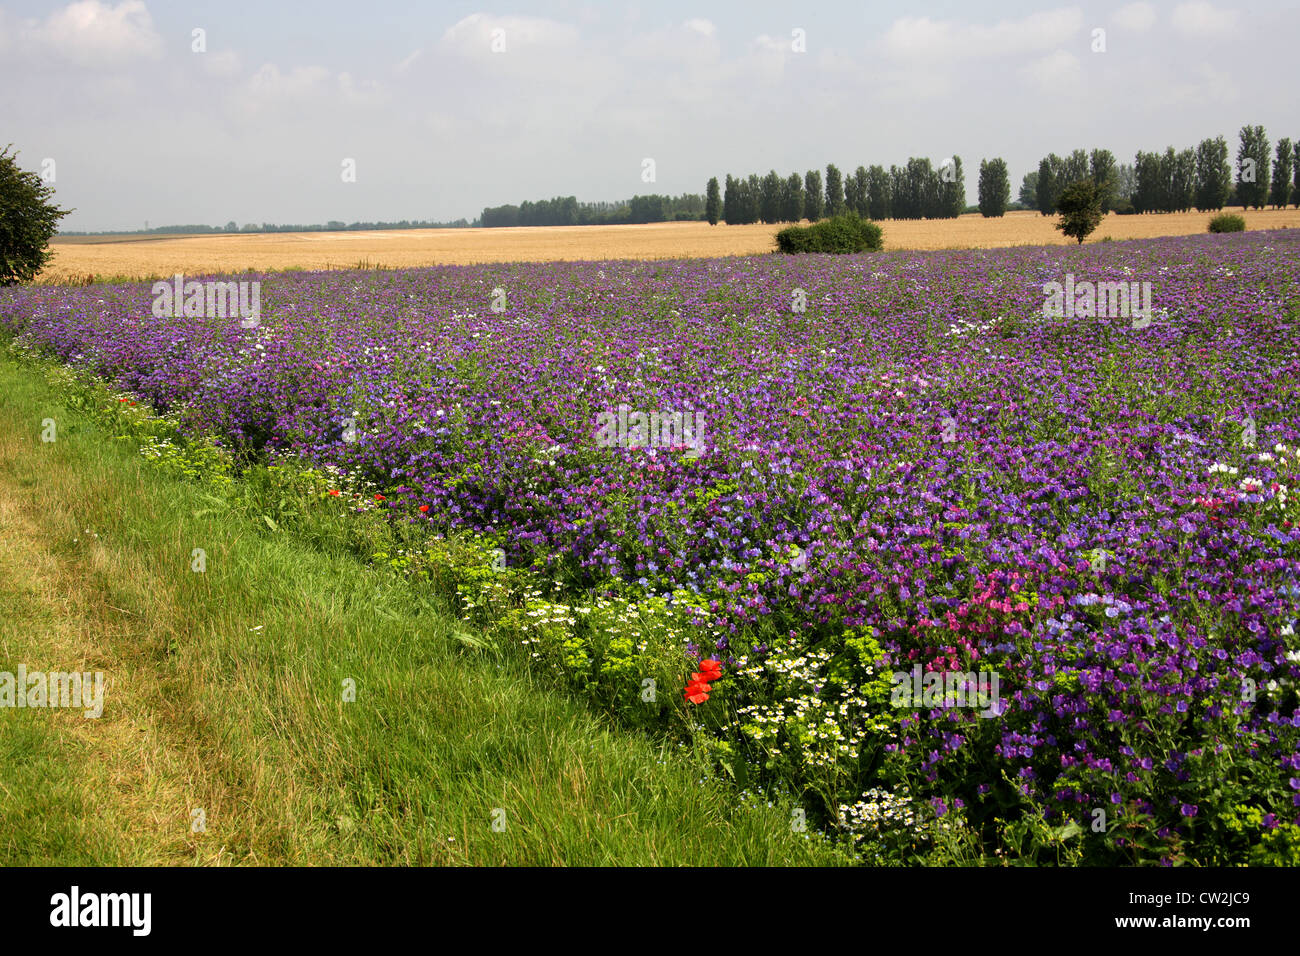 A Field of Viper's Bugloss Plants in Kent  A Crop Grown for